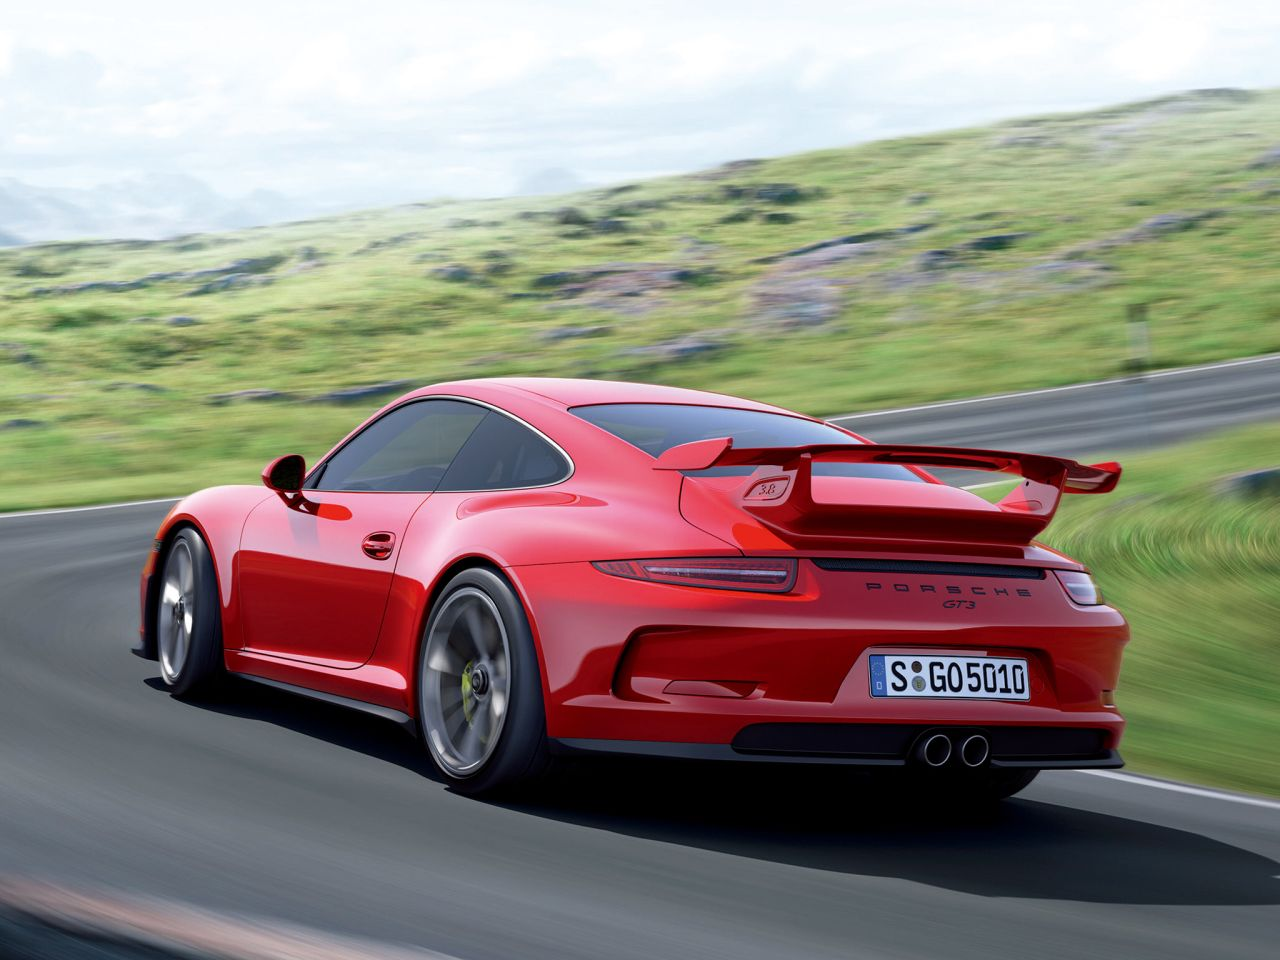 2014 porsche 911 gt3 991 gets official photos. Black Bedroom Furniture Sets. Home Design Ideas